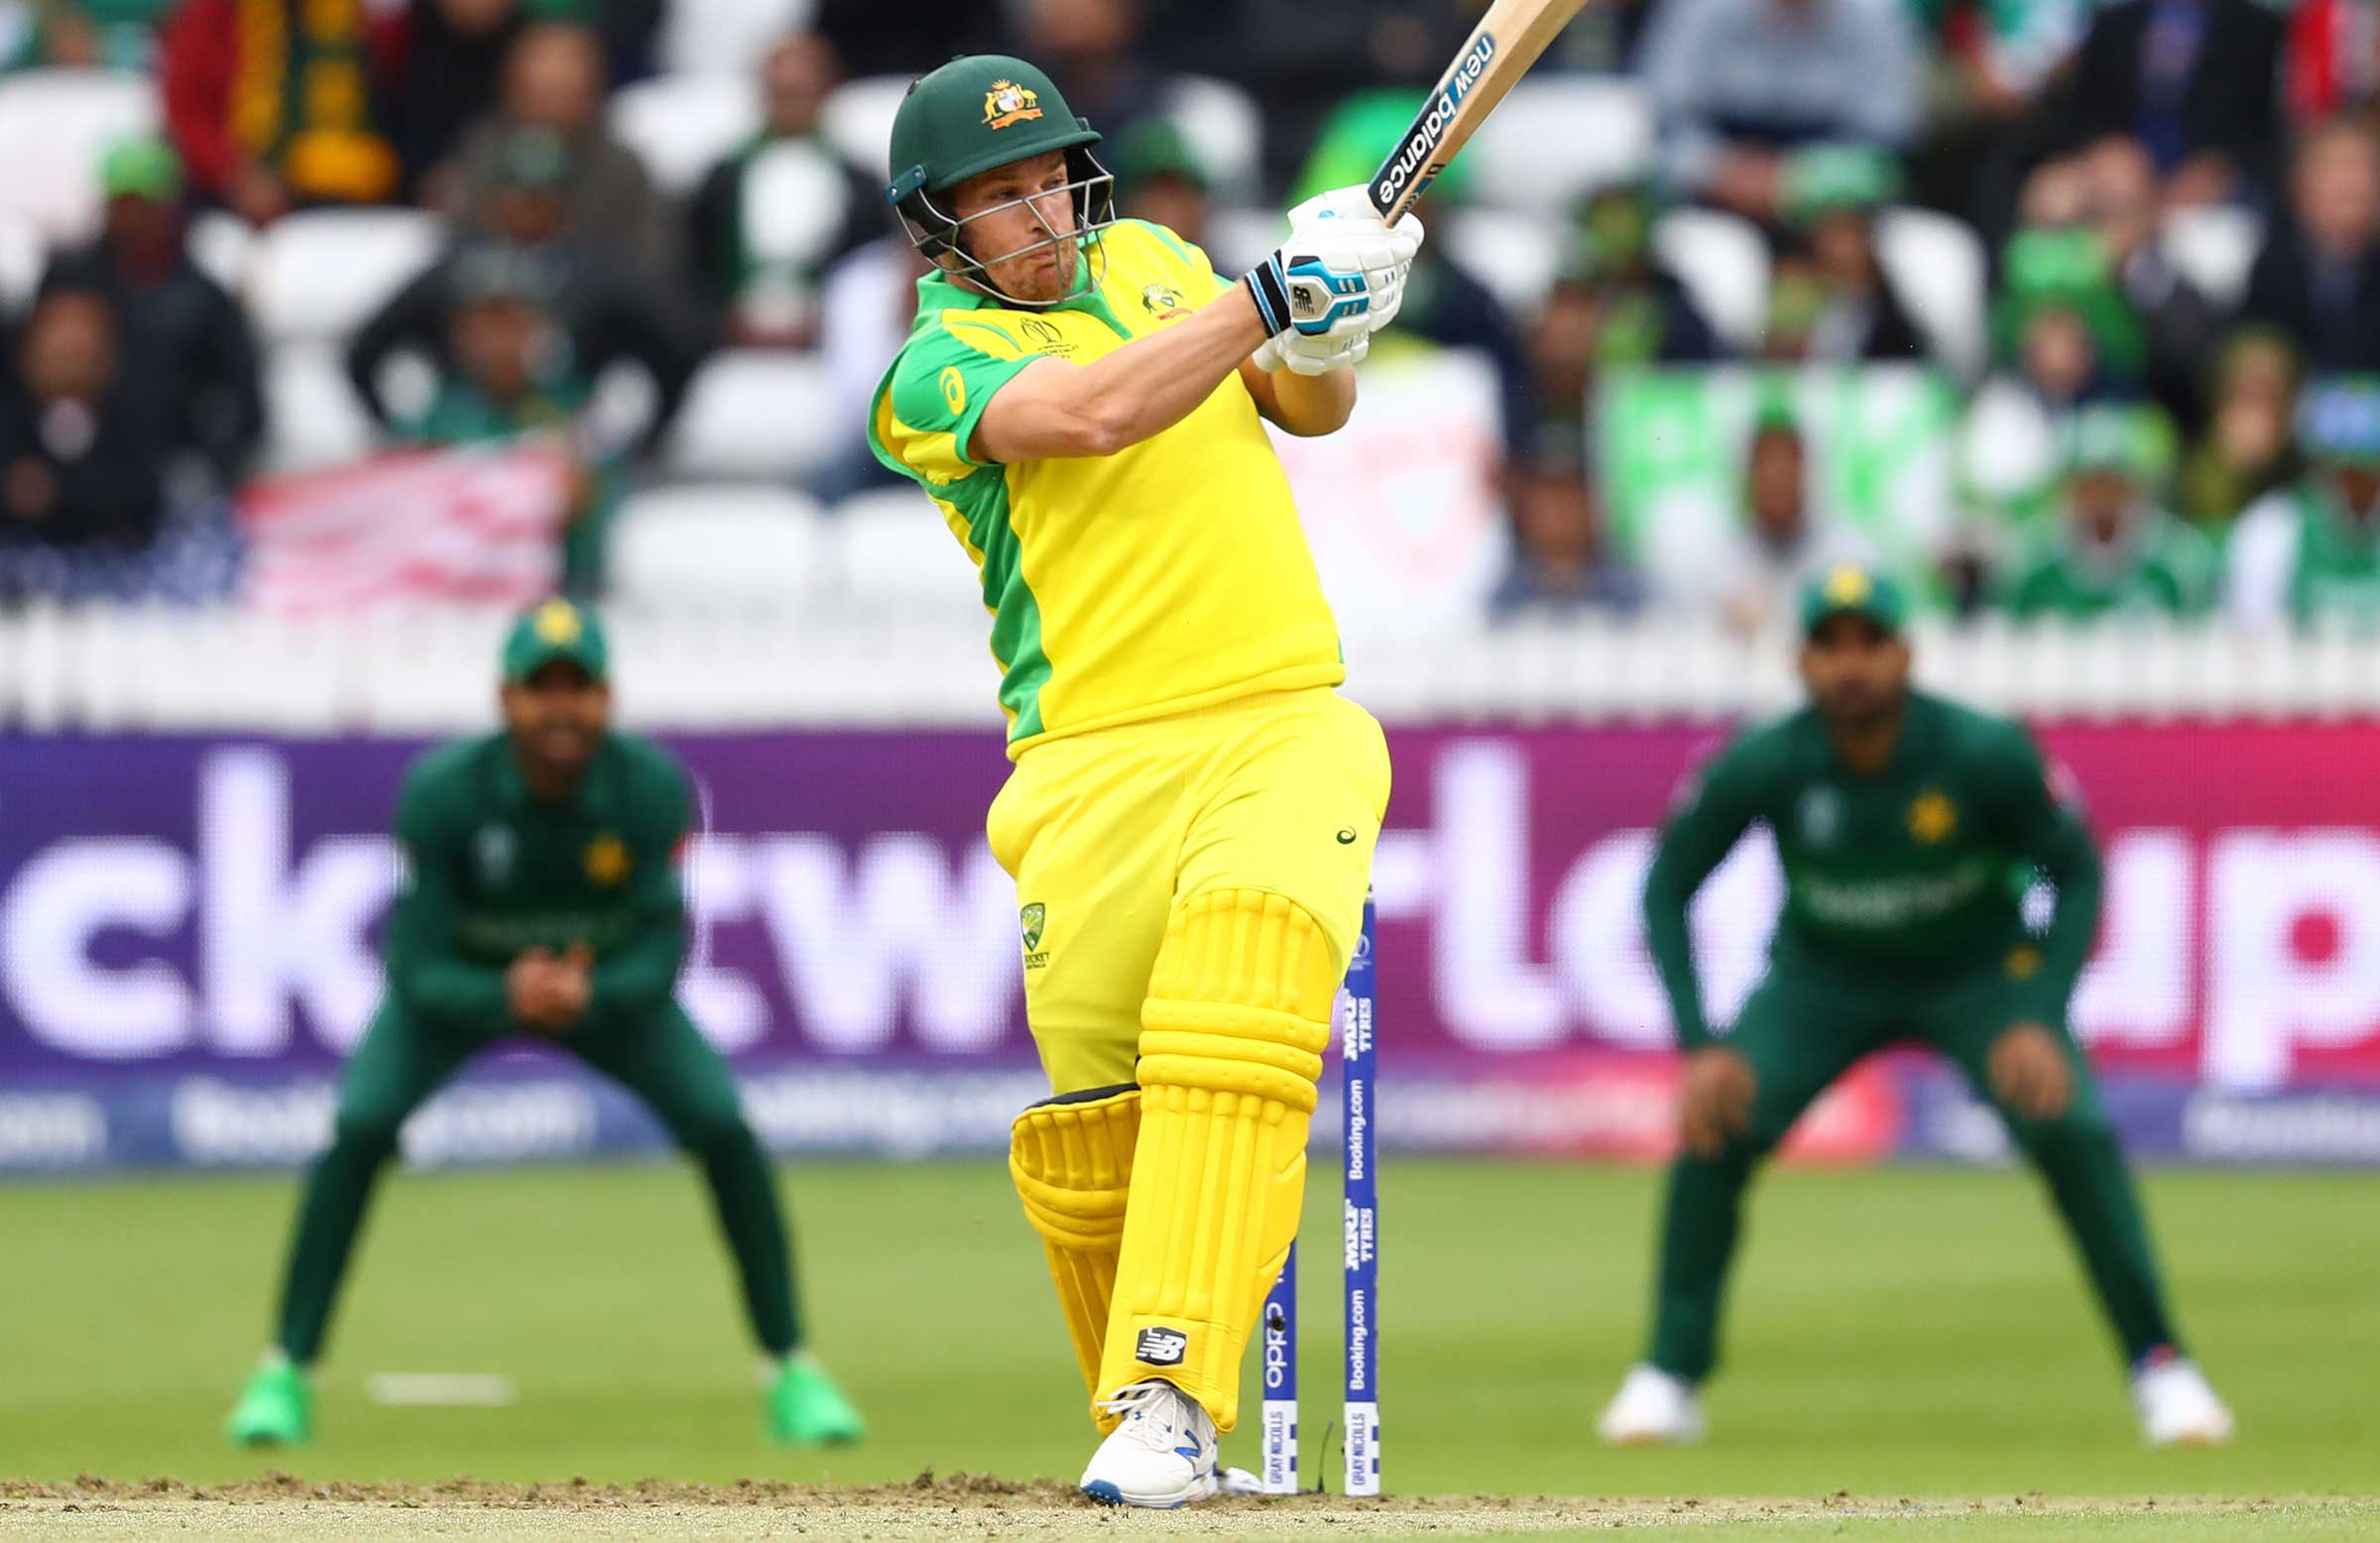 Aaron Finch scored 82 from 84 balls // Getty